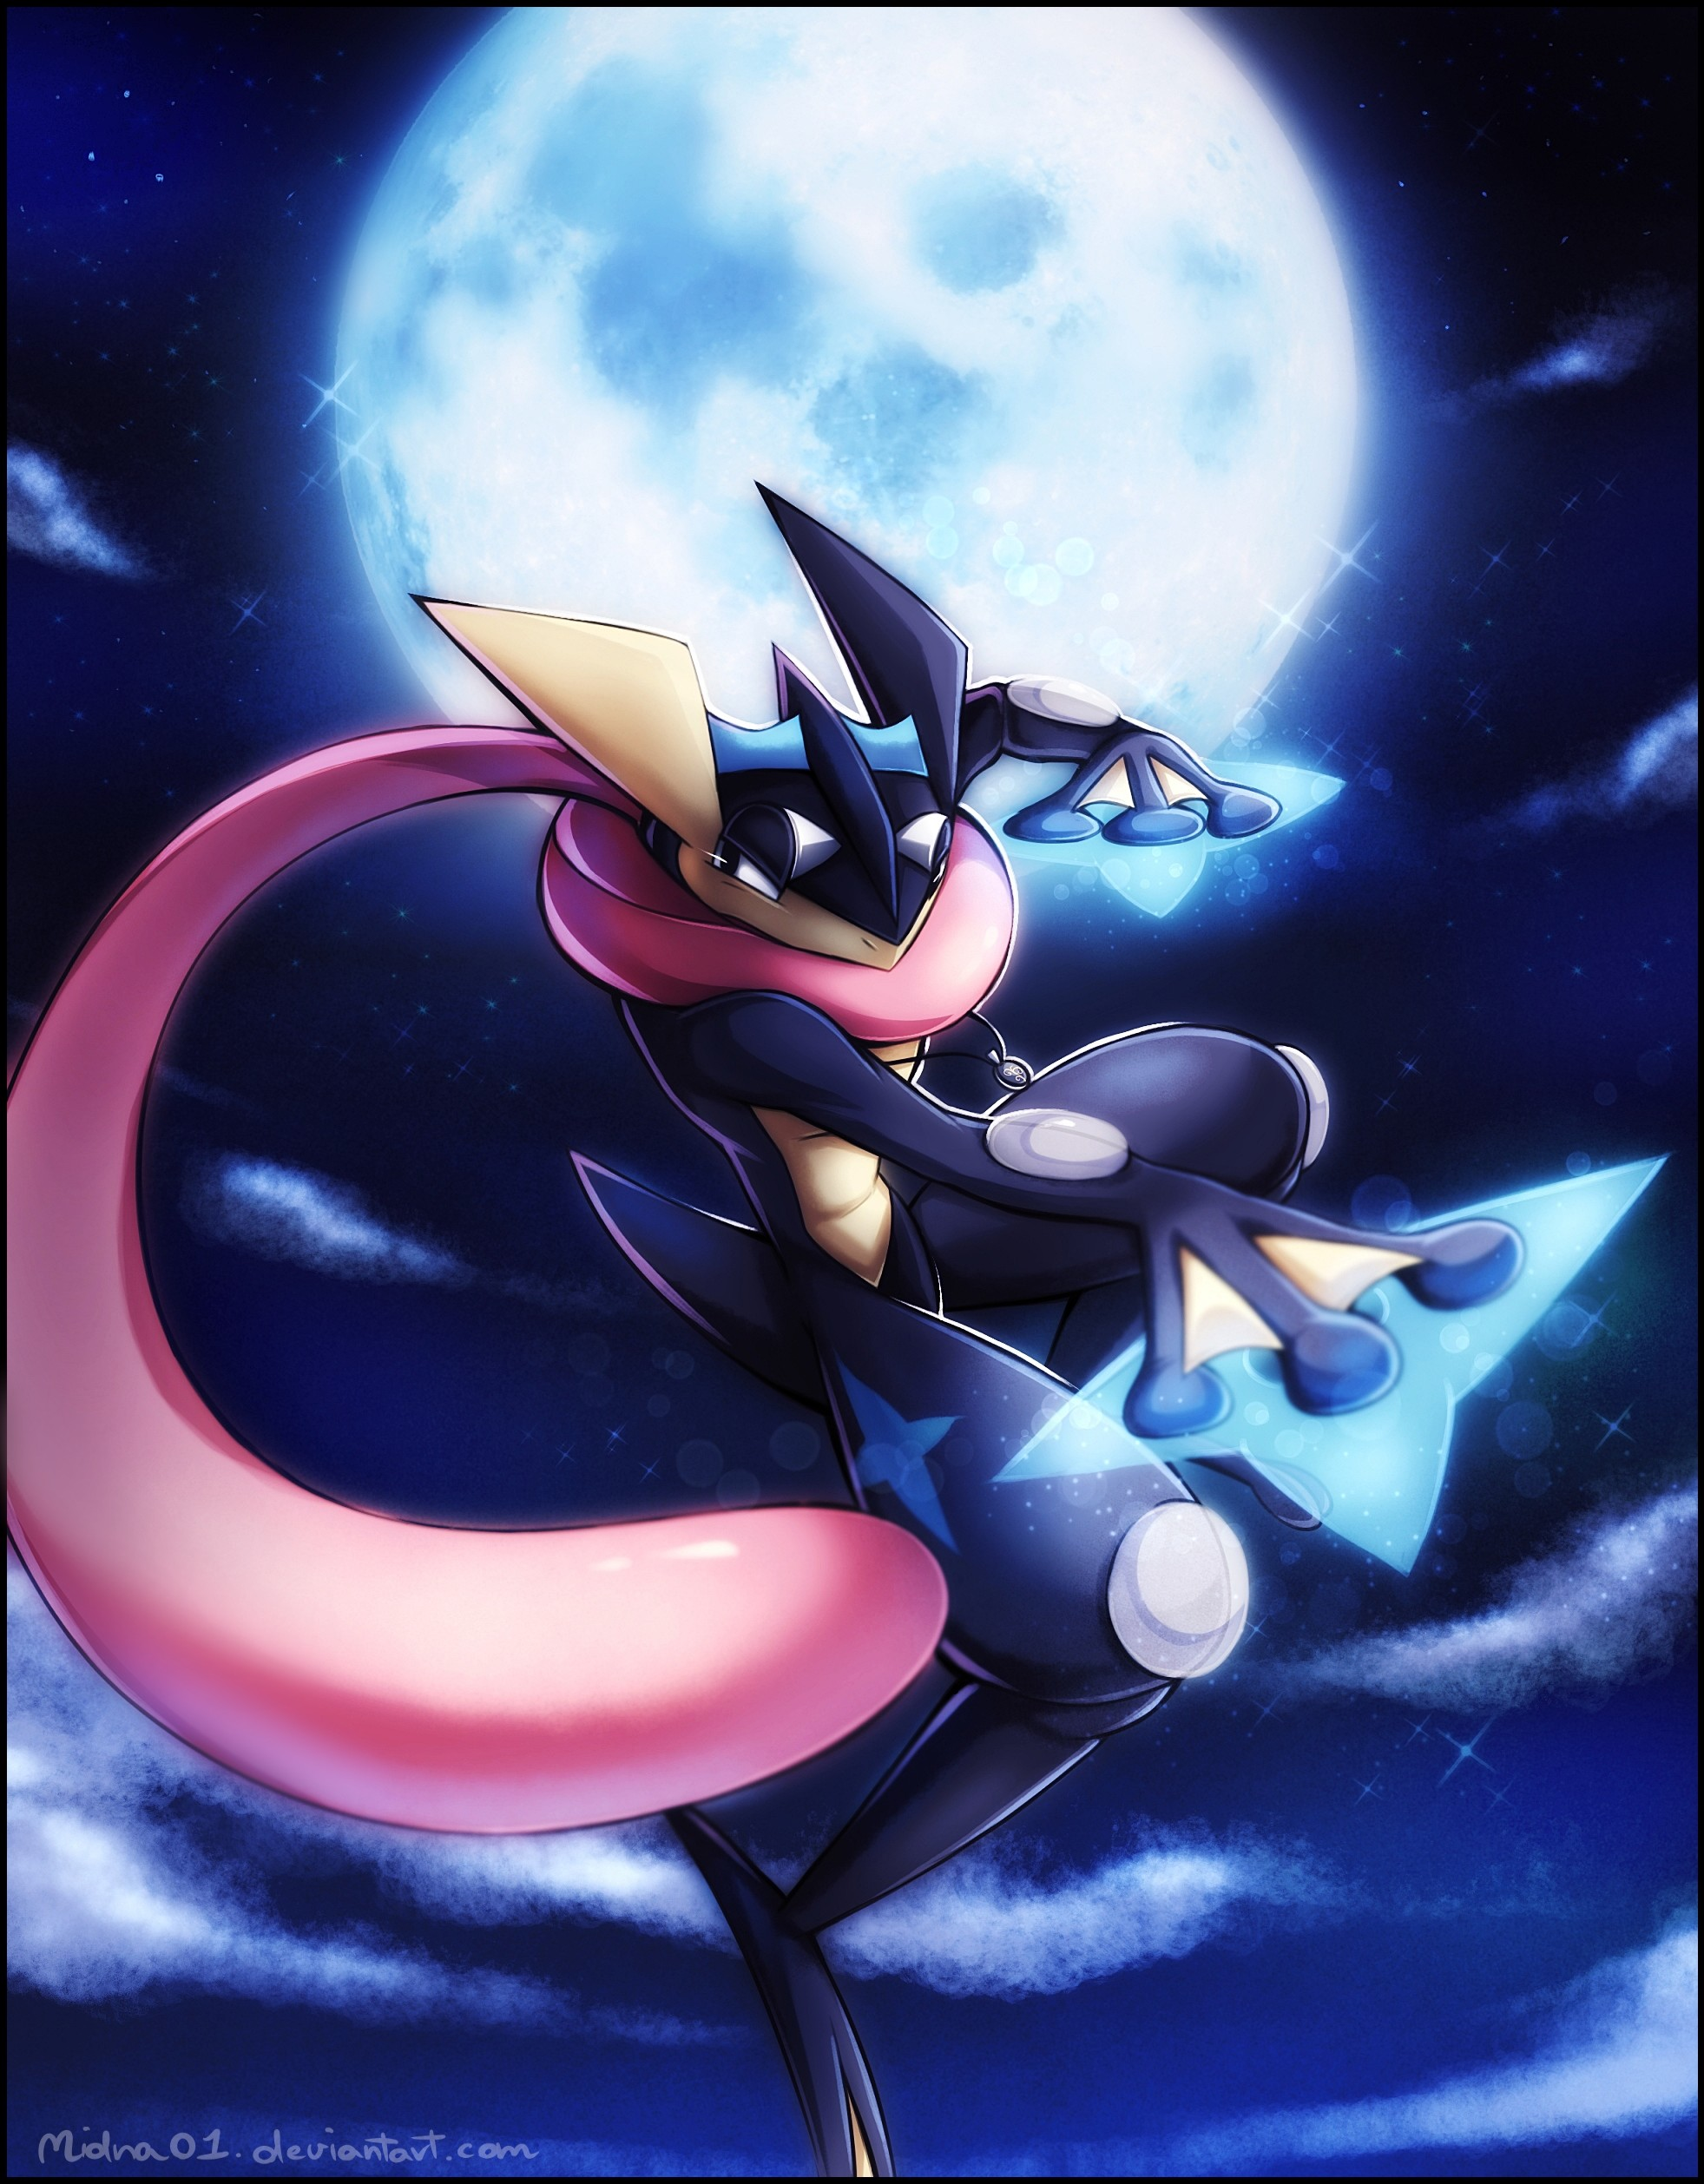 1963x2516 e621 absurd_res feral full_moon greninja hi_res midna01 moon nintendo  pokémon ranged_weapon shuriken solo tongue video_games weapon